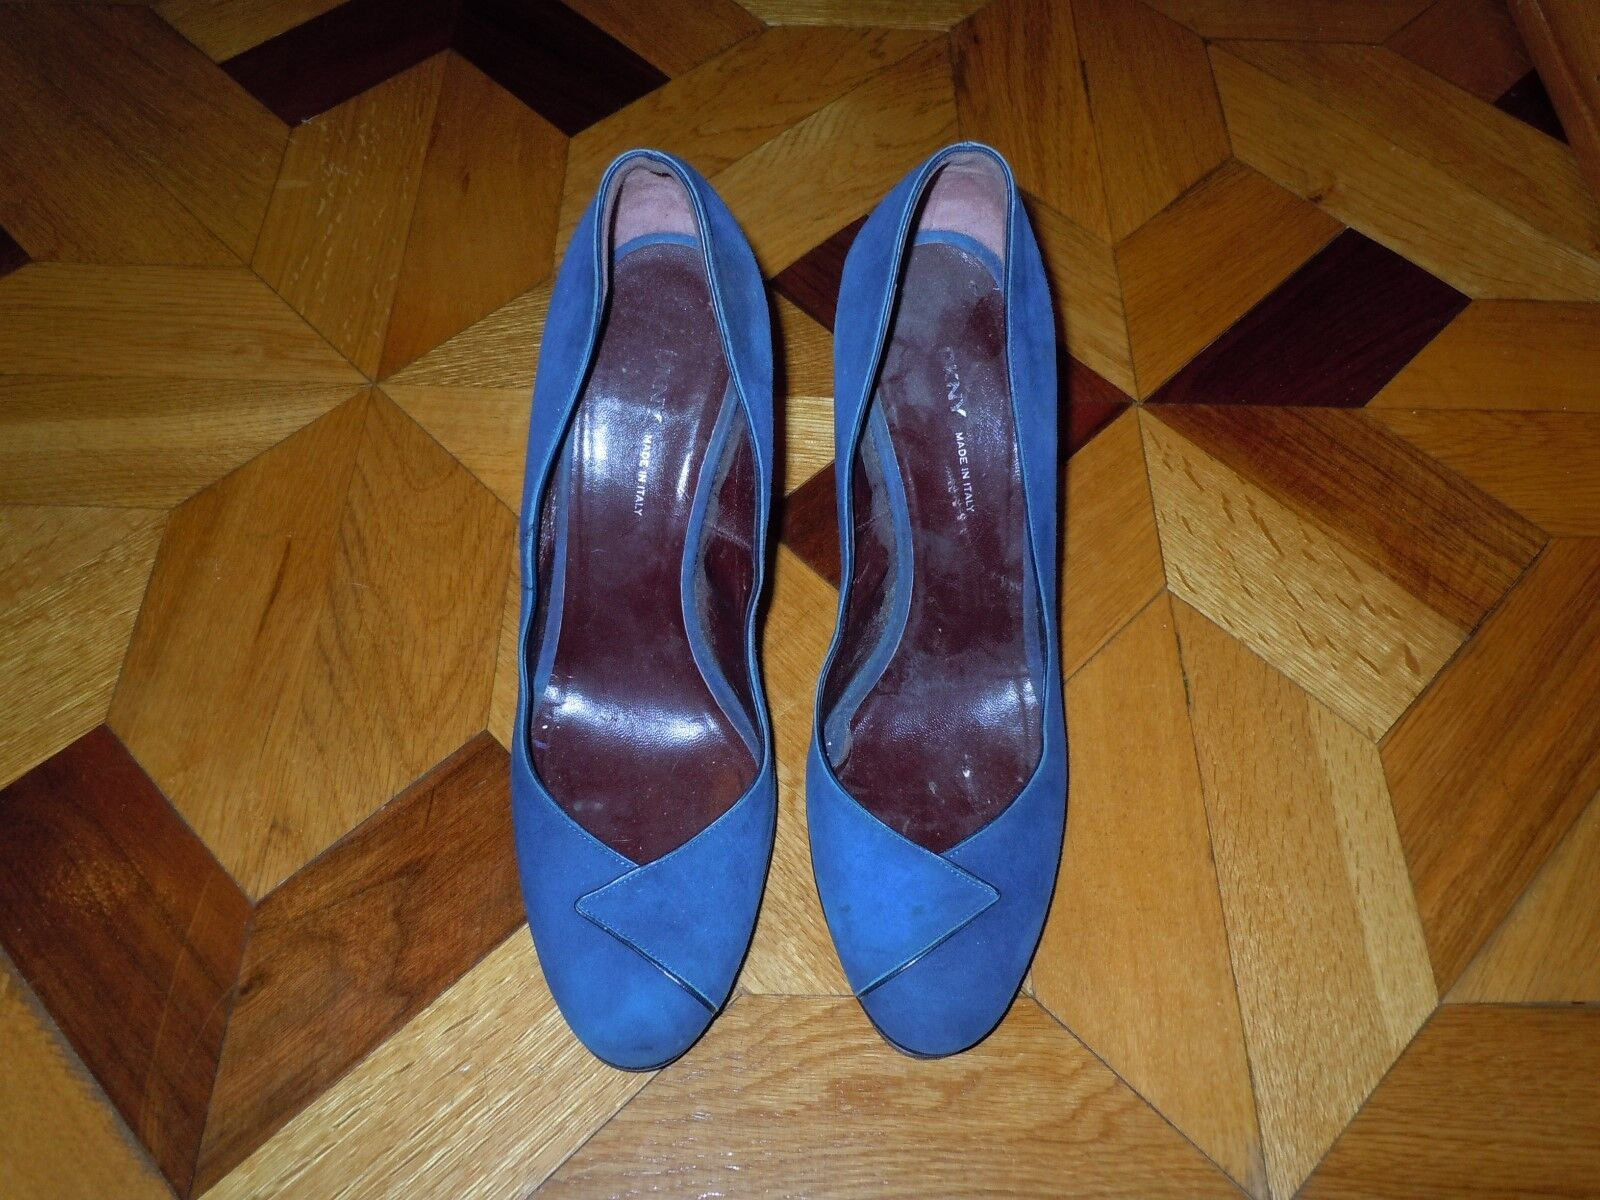 Lady's DKNY Blue Suede Leather Heels Size Shoes Made In Italy Size Heels 9 e37a2c